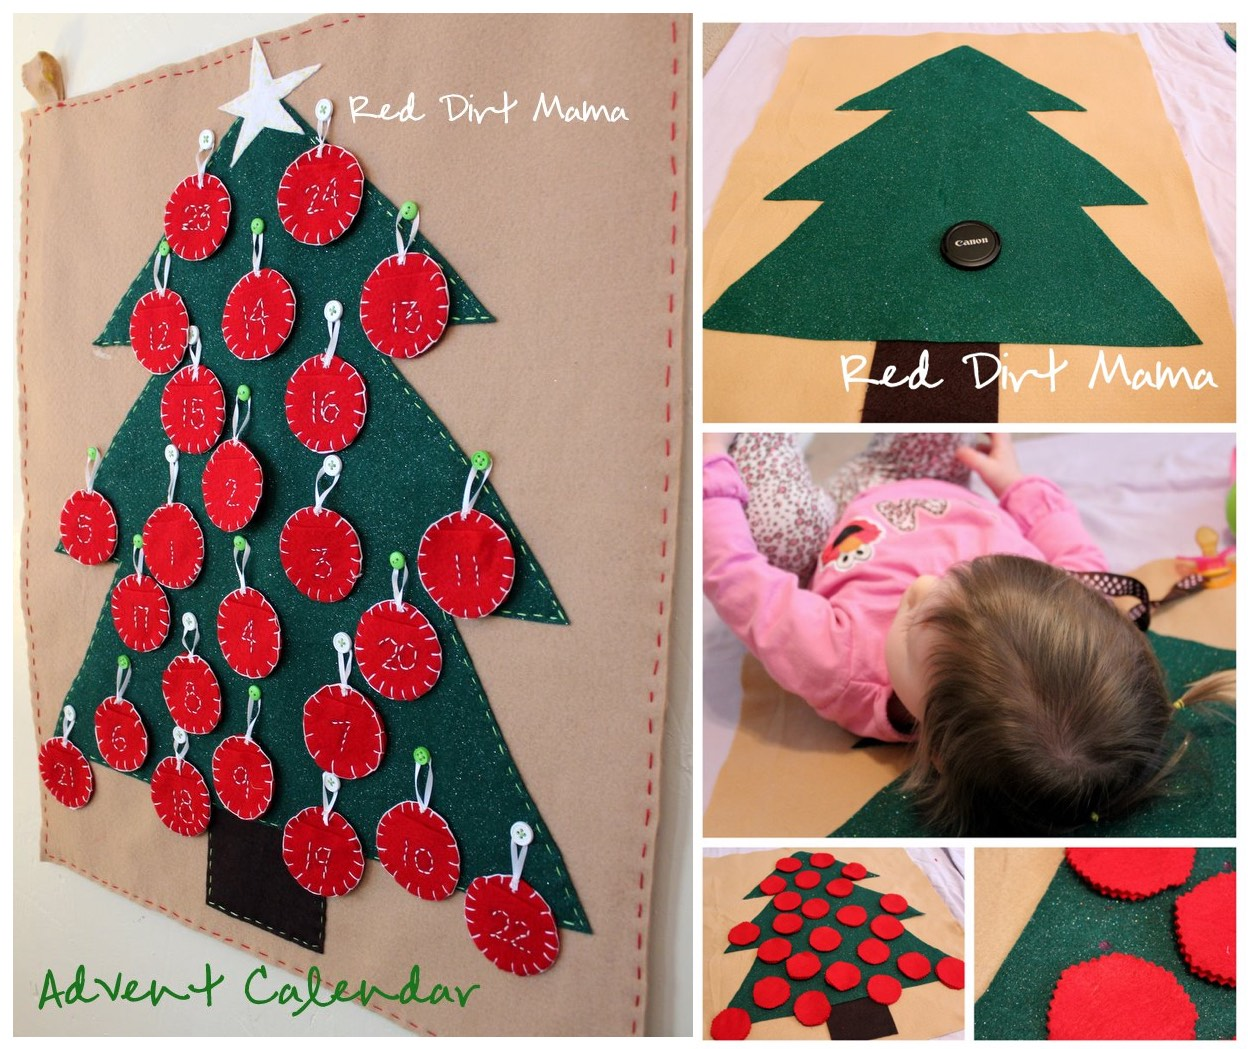 Kids Christmas Calendar Ideas : Top ideas for the best diy advent calendar kids